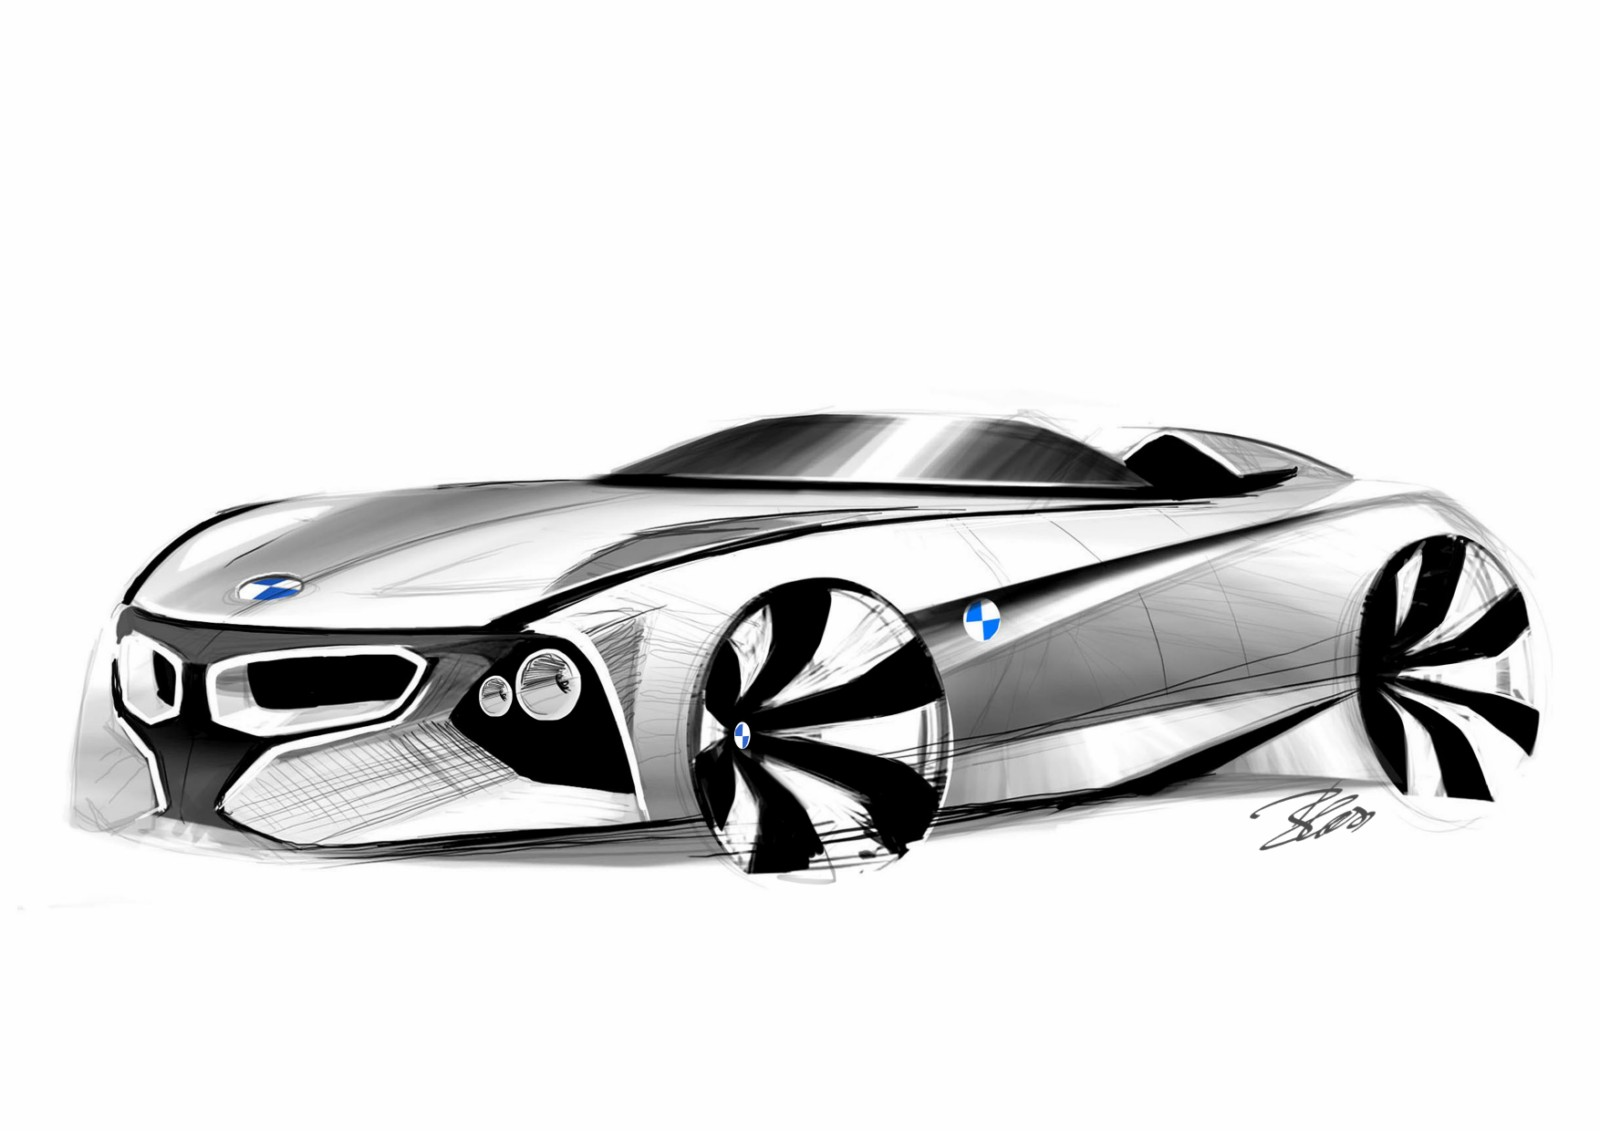 Juliane Blasi Pens The Bmw Vision Connecteddrive Concept